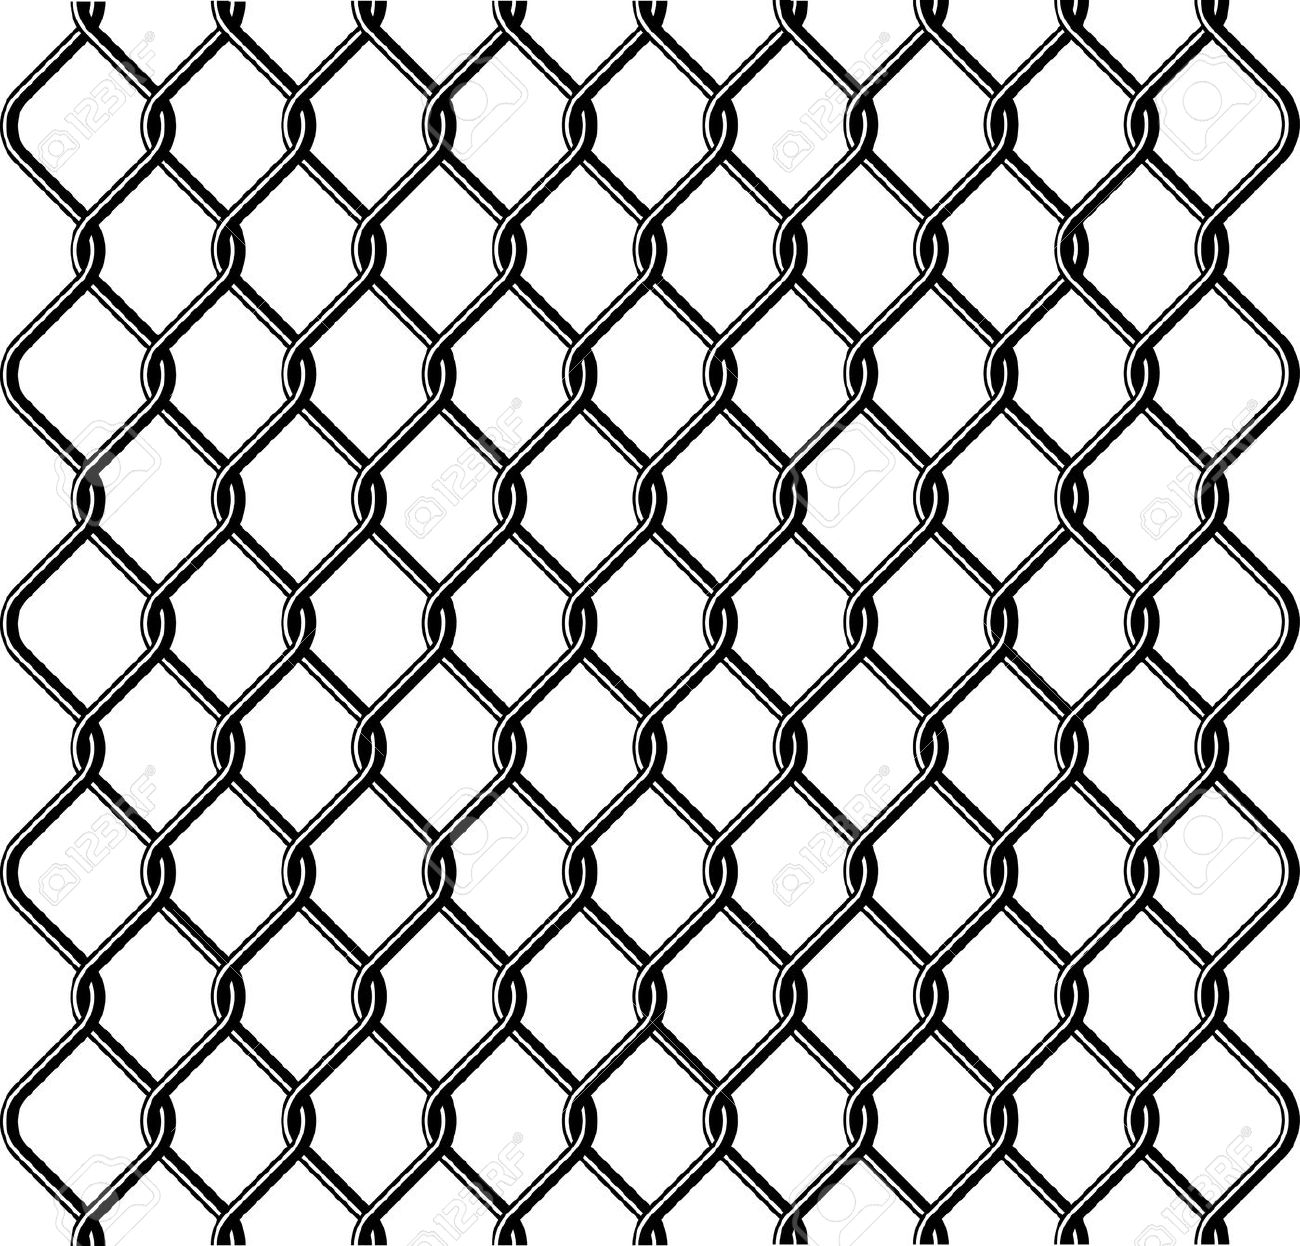 Chain Link Fence Texture Royalty Free Cliparts, Vectors, And Stock.